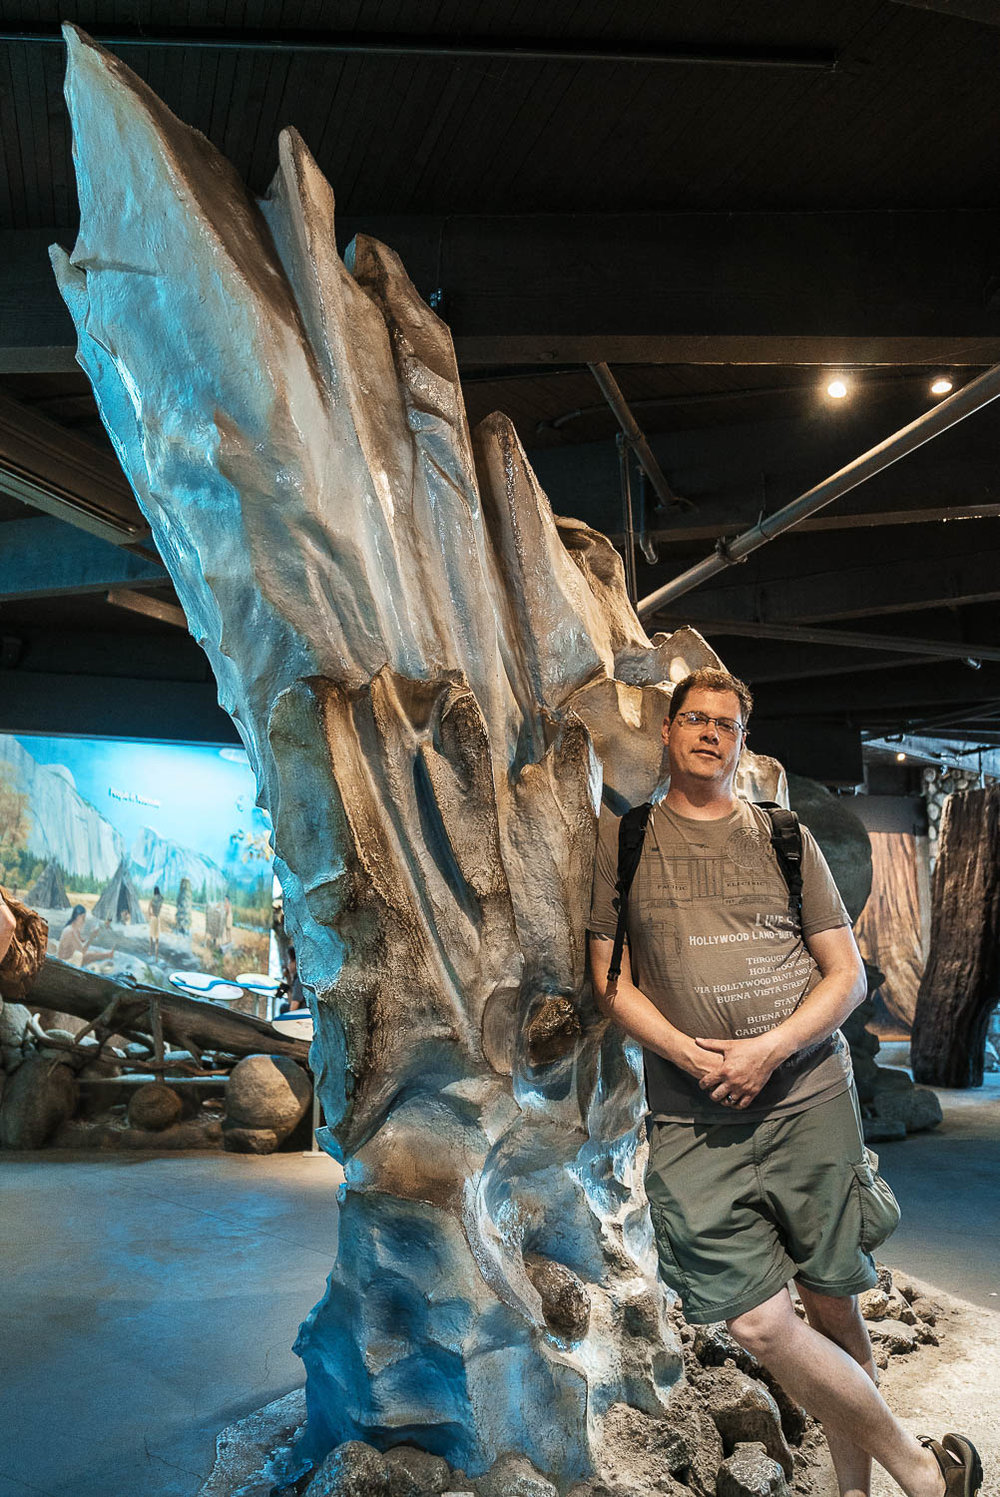 My brother Eric in front of the glacier exhibit he sculpted for the Yosemite Visitor's Center. Prolost Geartrain GT02 profile, all processing done in Lightroom CC for iOS.